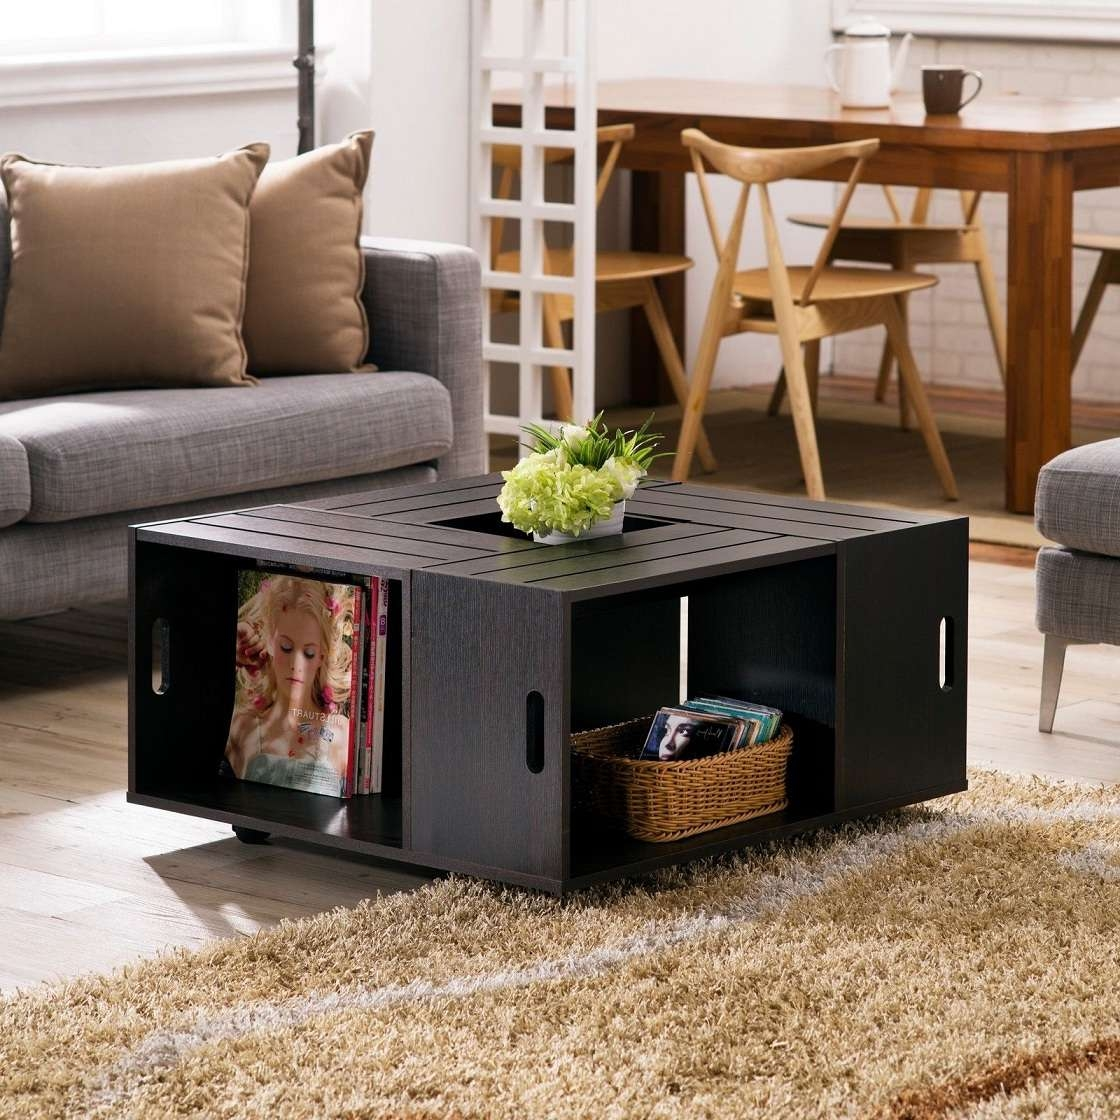 Well Liked Large Square Coffee Table With Storage Throughout Coffee Tables With Storage Drawers In Reputable Swivel Coffee (View 20 of 20)